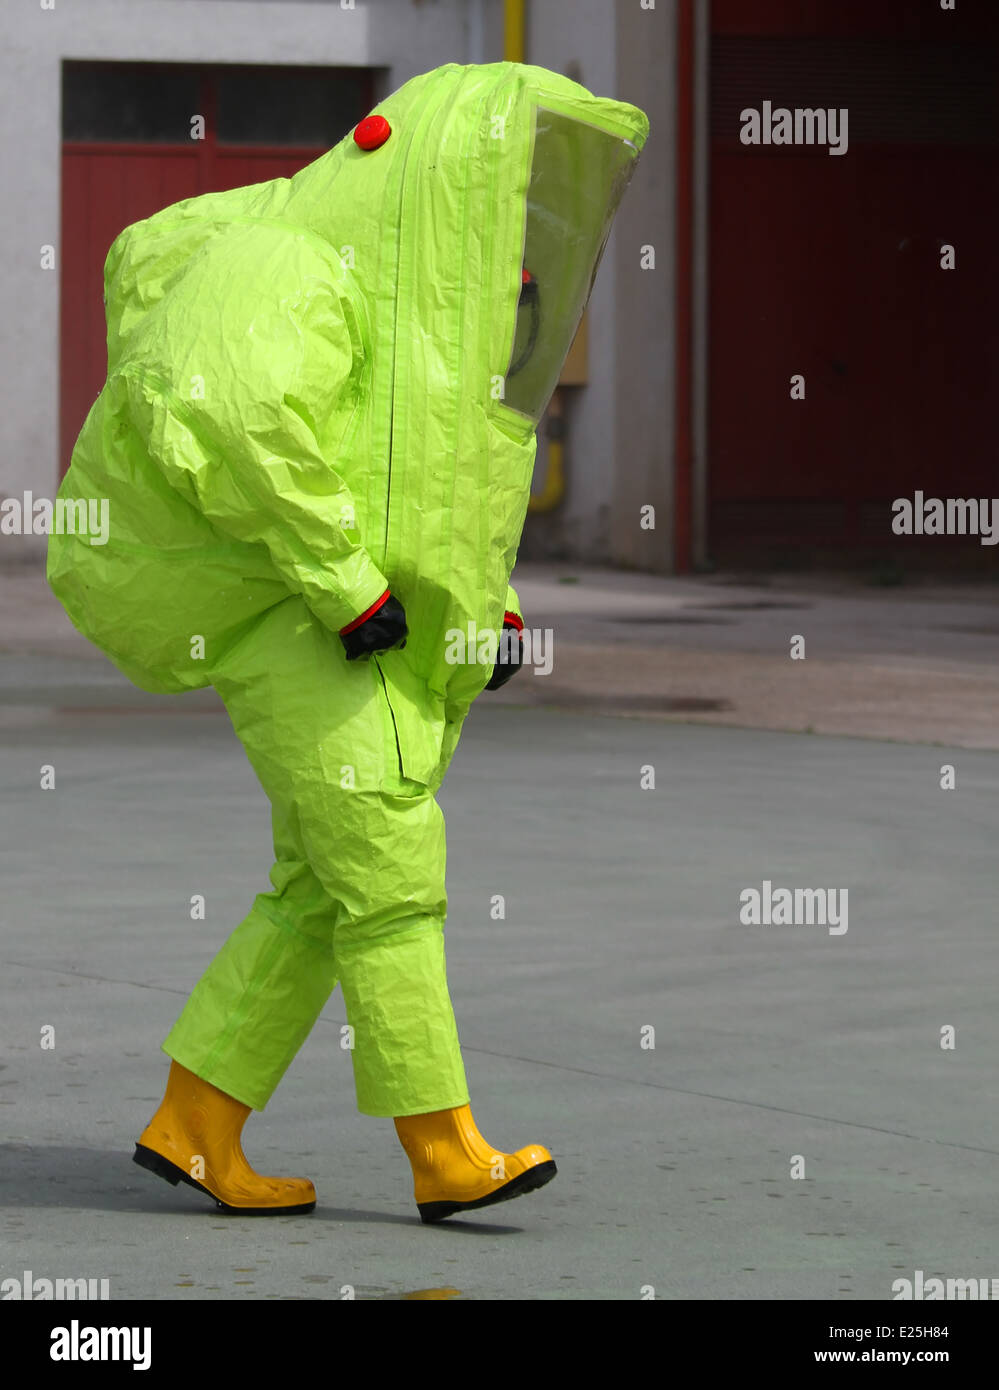 fireman with the yellow suit and breathing apparatus to enter contaminated sites in complete safety. - Stock Image